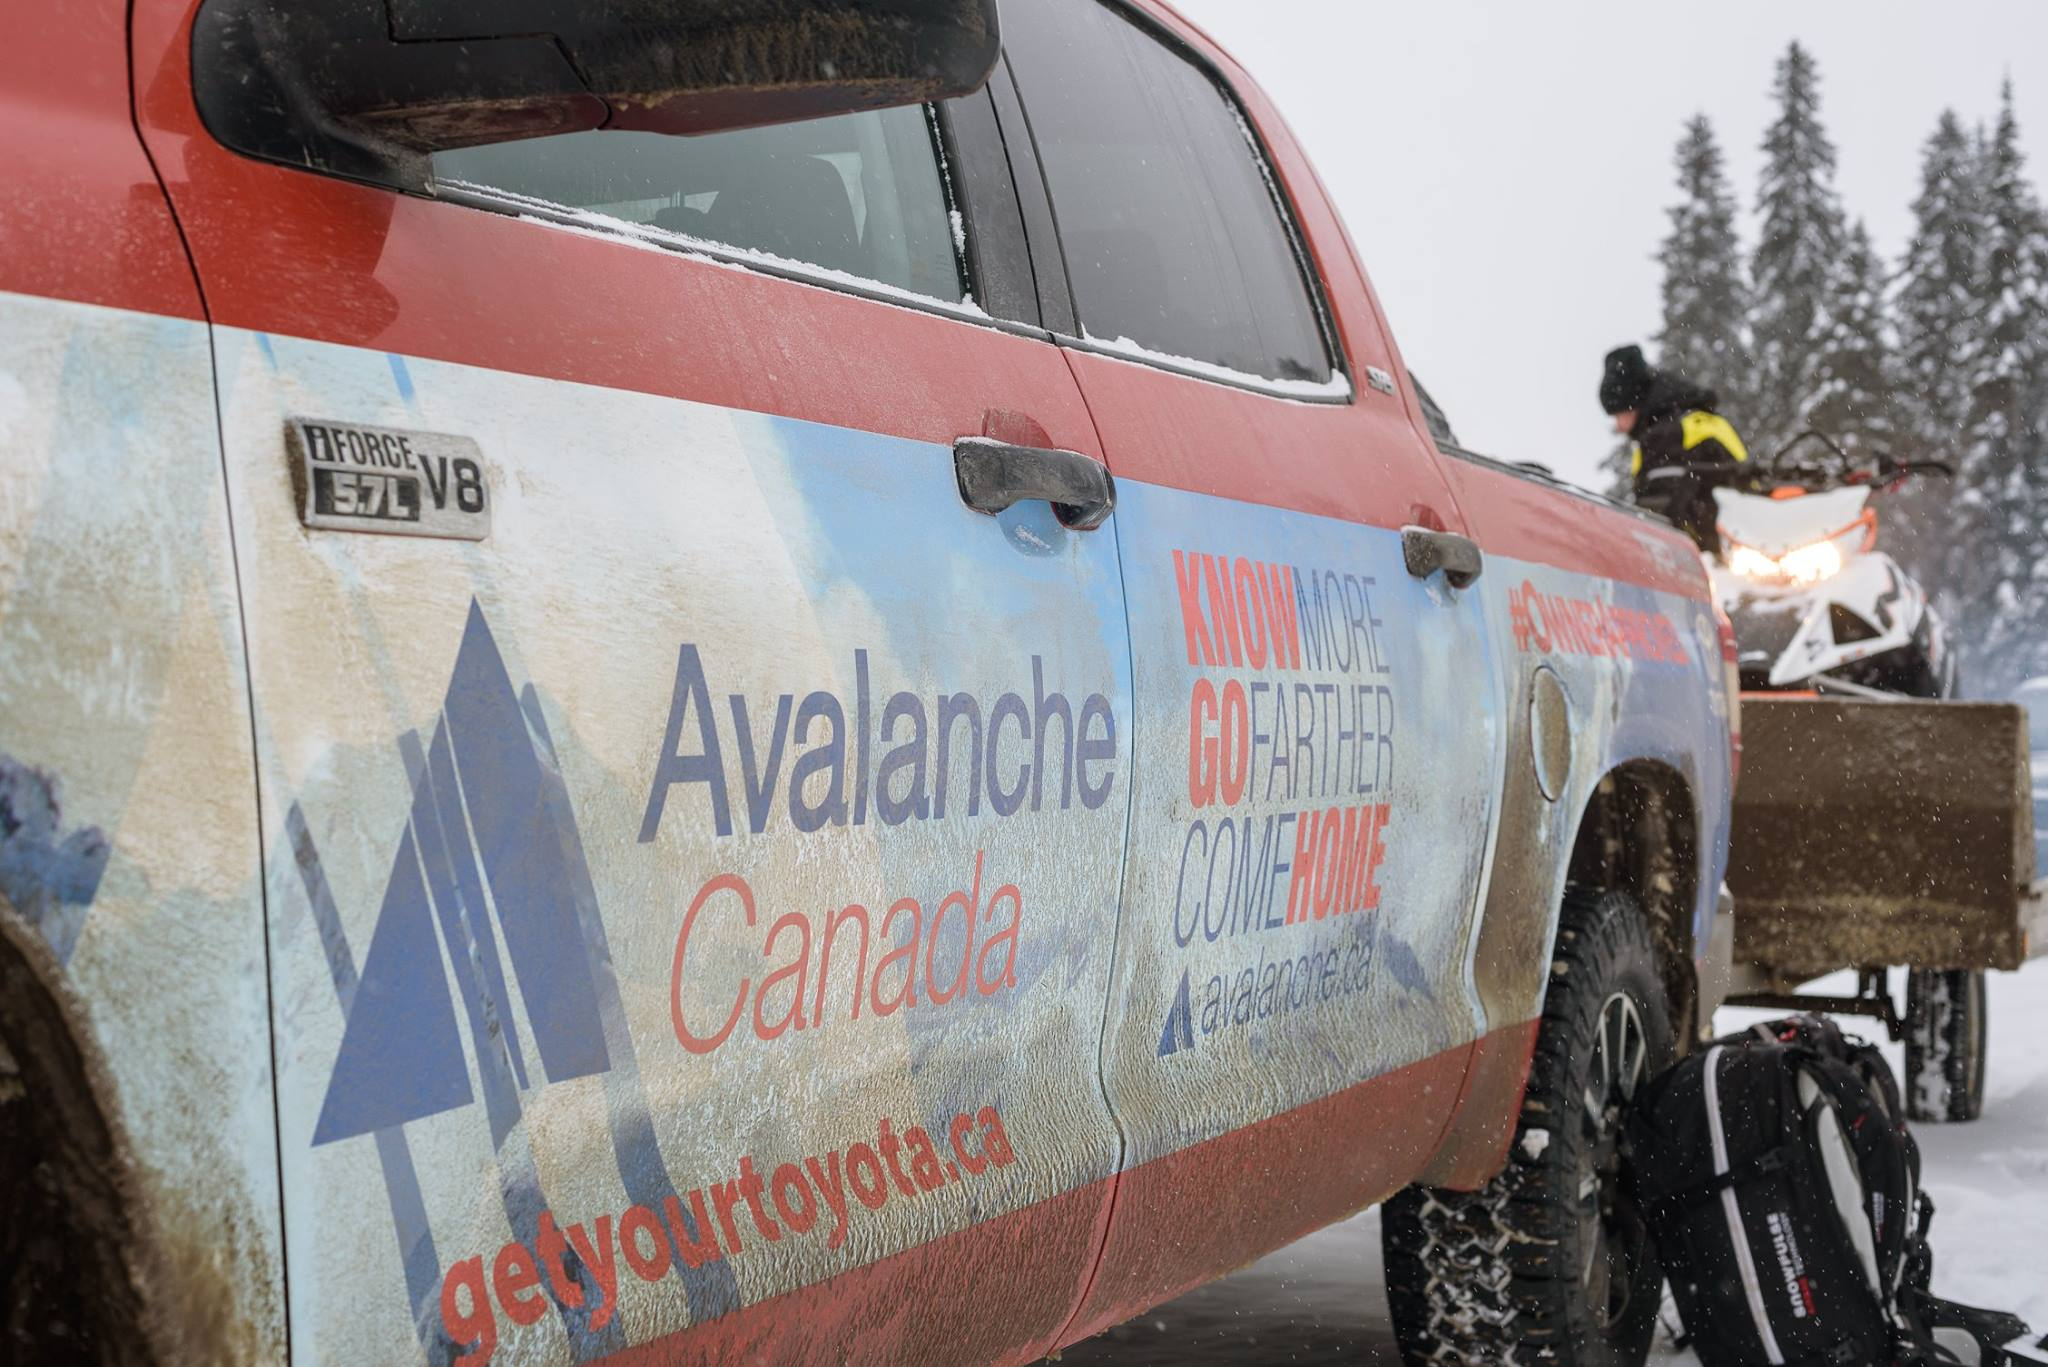 Avalanche Canada asking back country enthusiasts to err on the side of caution this weekend